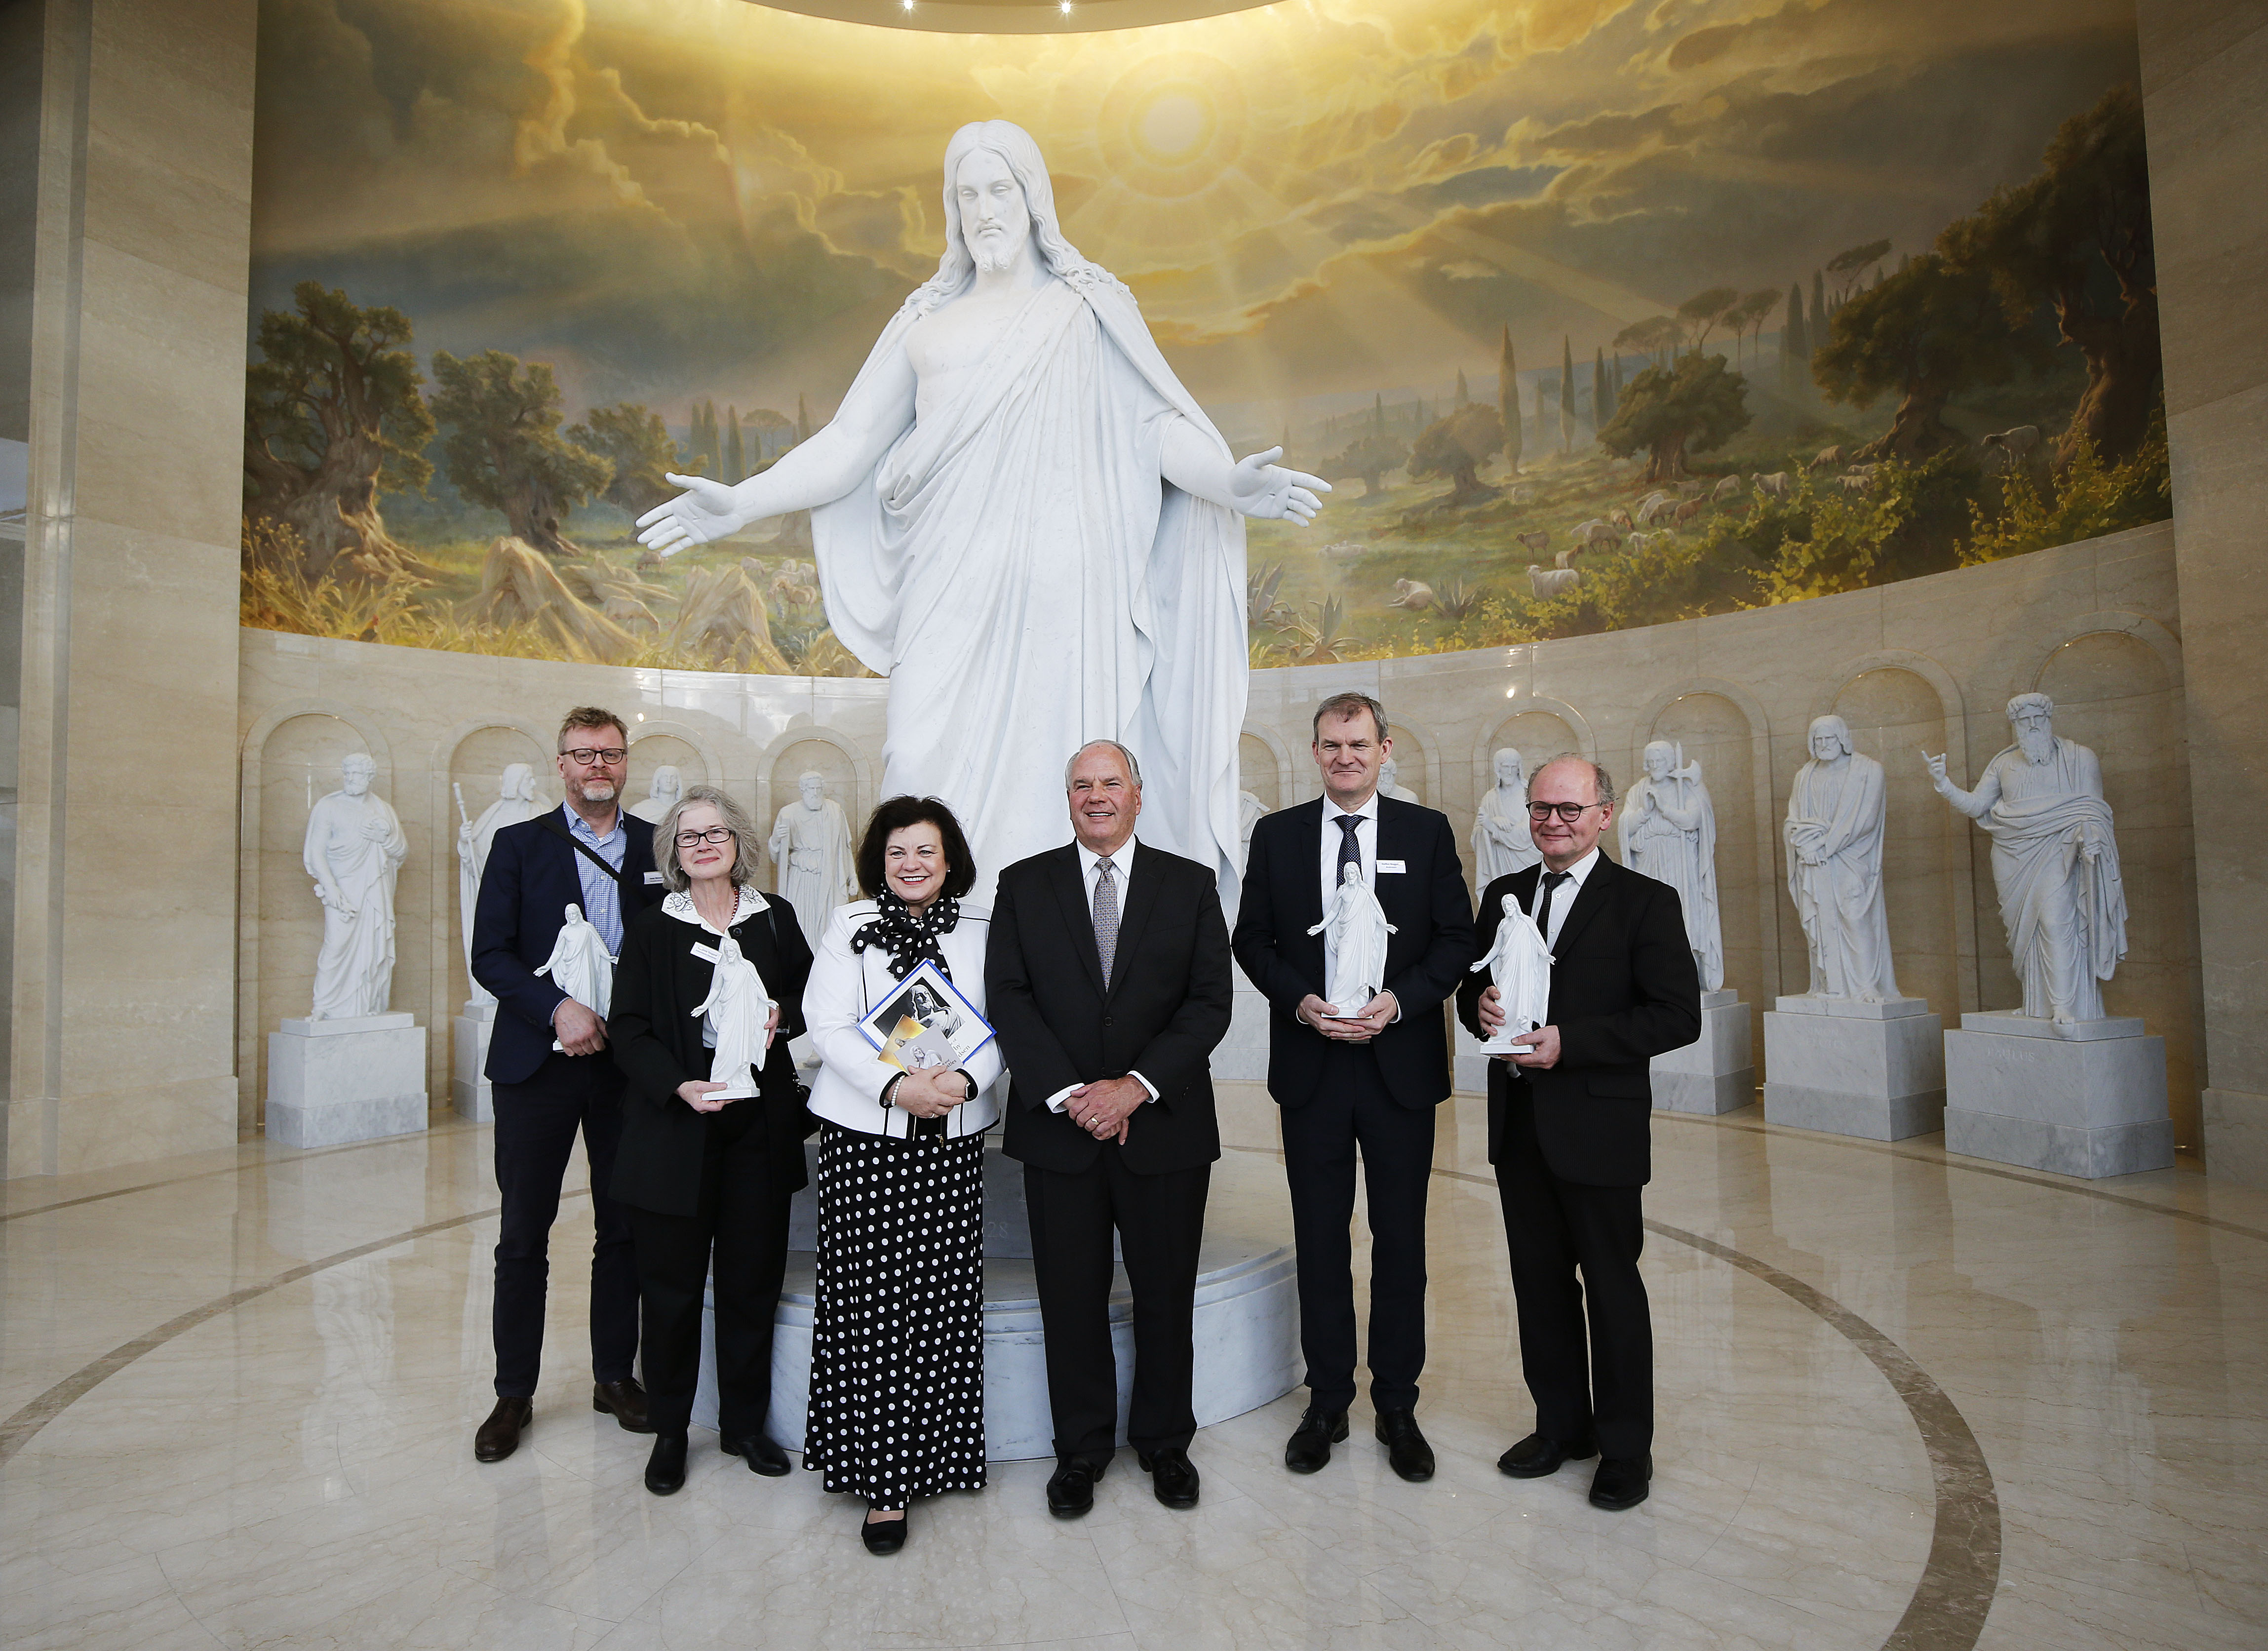 Elder Ronald A. Rasband, center, of the Quorum of the Twelve Apostles poses with officials from the Church of Our Lady in Denmark, which is home to the original Christus statue, after giving them a tour at the Rome Temple Visitor's Center and presents of Christus figurines in Rome on Wednesday, Jan. 16, 2019.